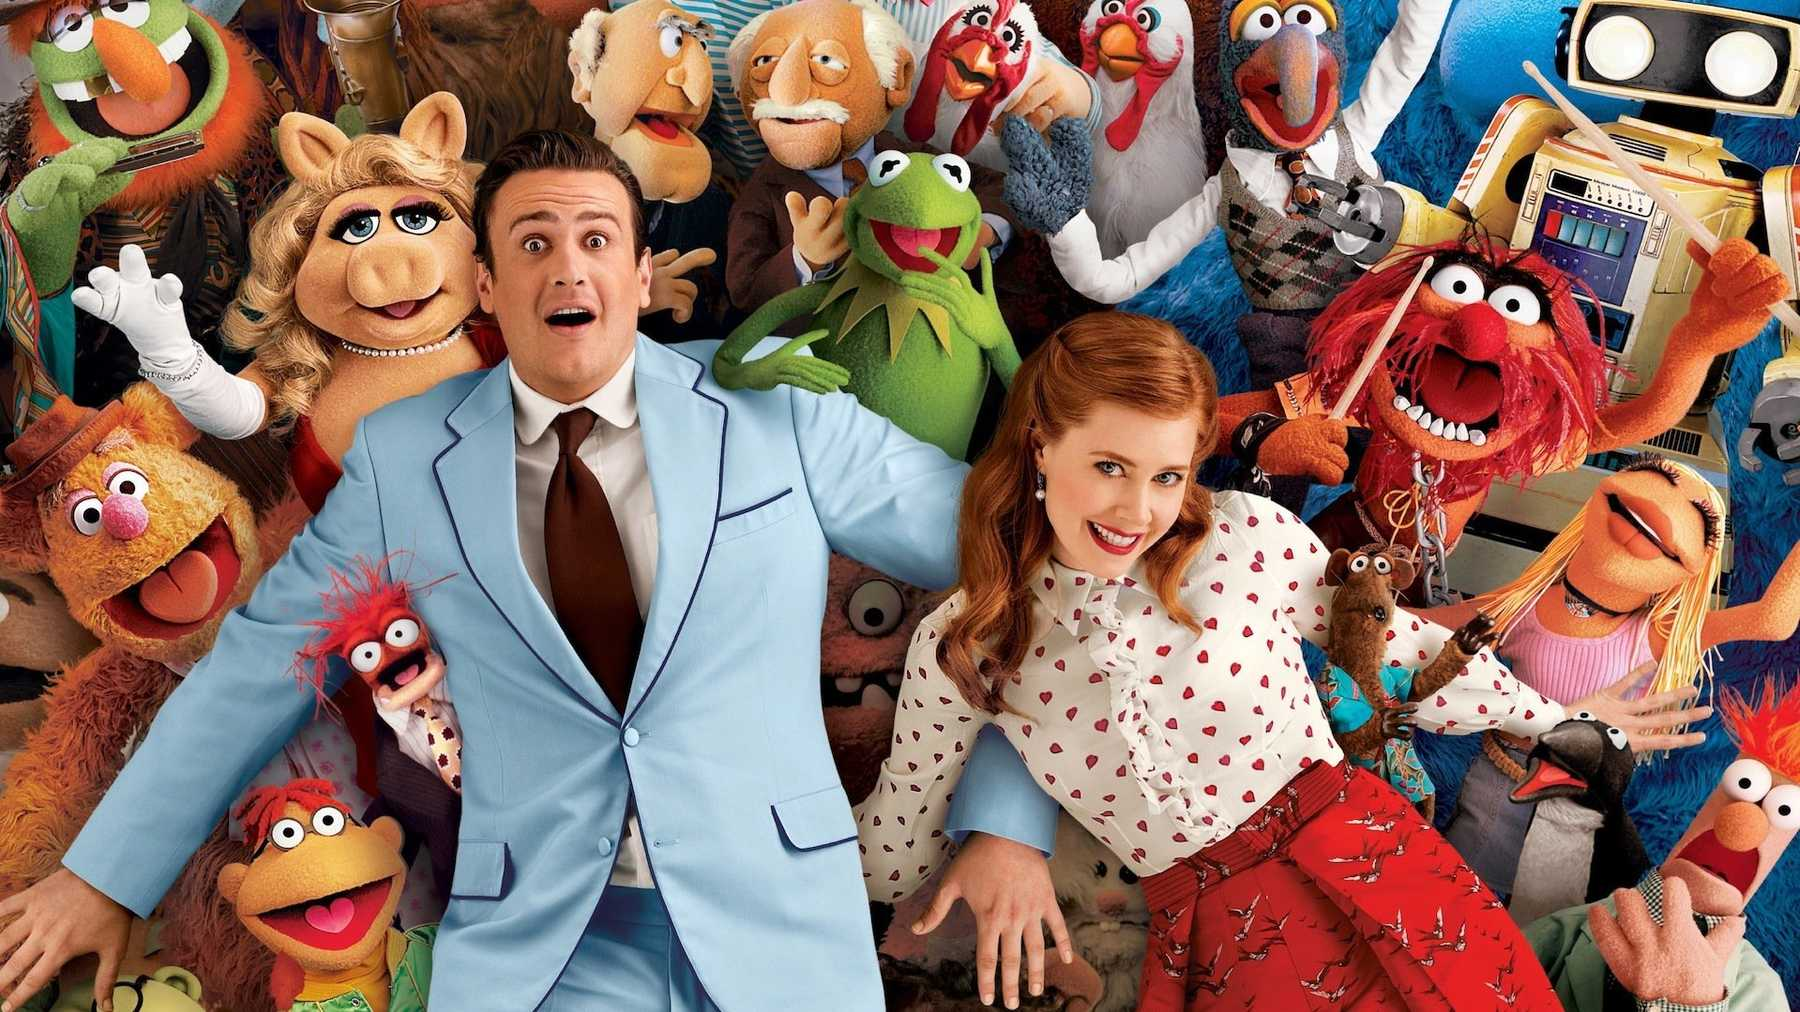 5b The Muppets: The Adult Origins Of 'Mahna Mahna' And More Things You Didn't Know